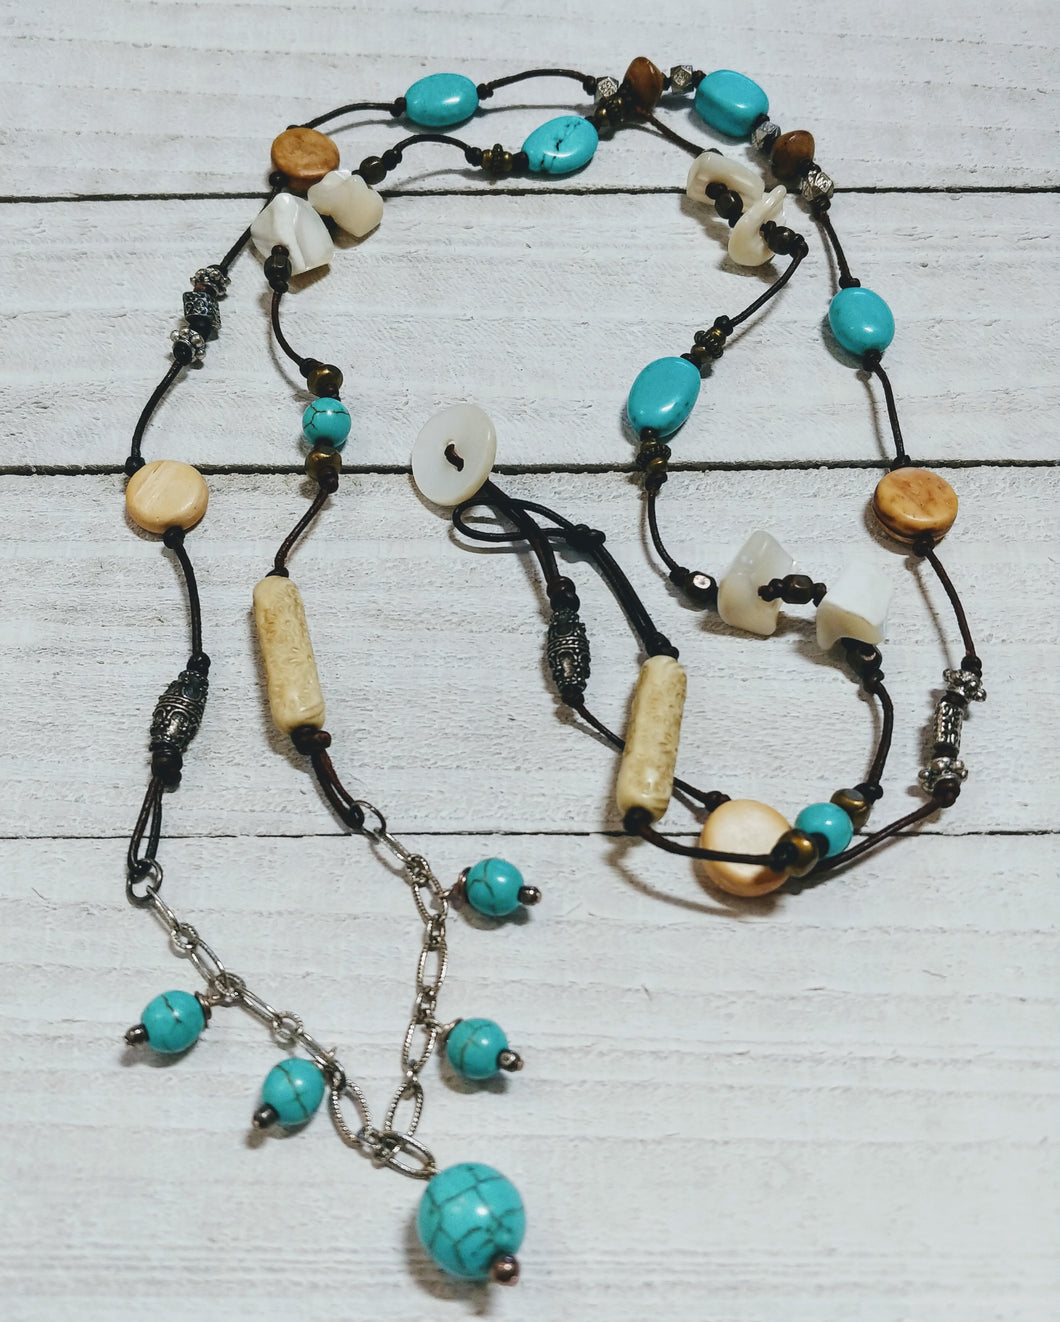 Leather Necklace with Turquoise, Wood, and Mother of Pearl